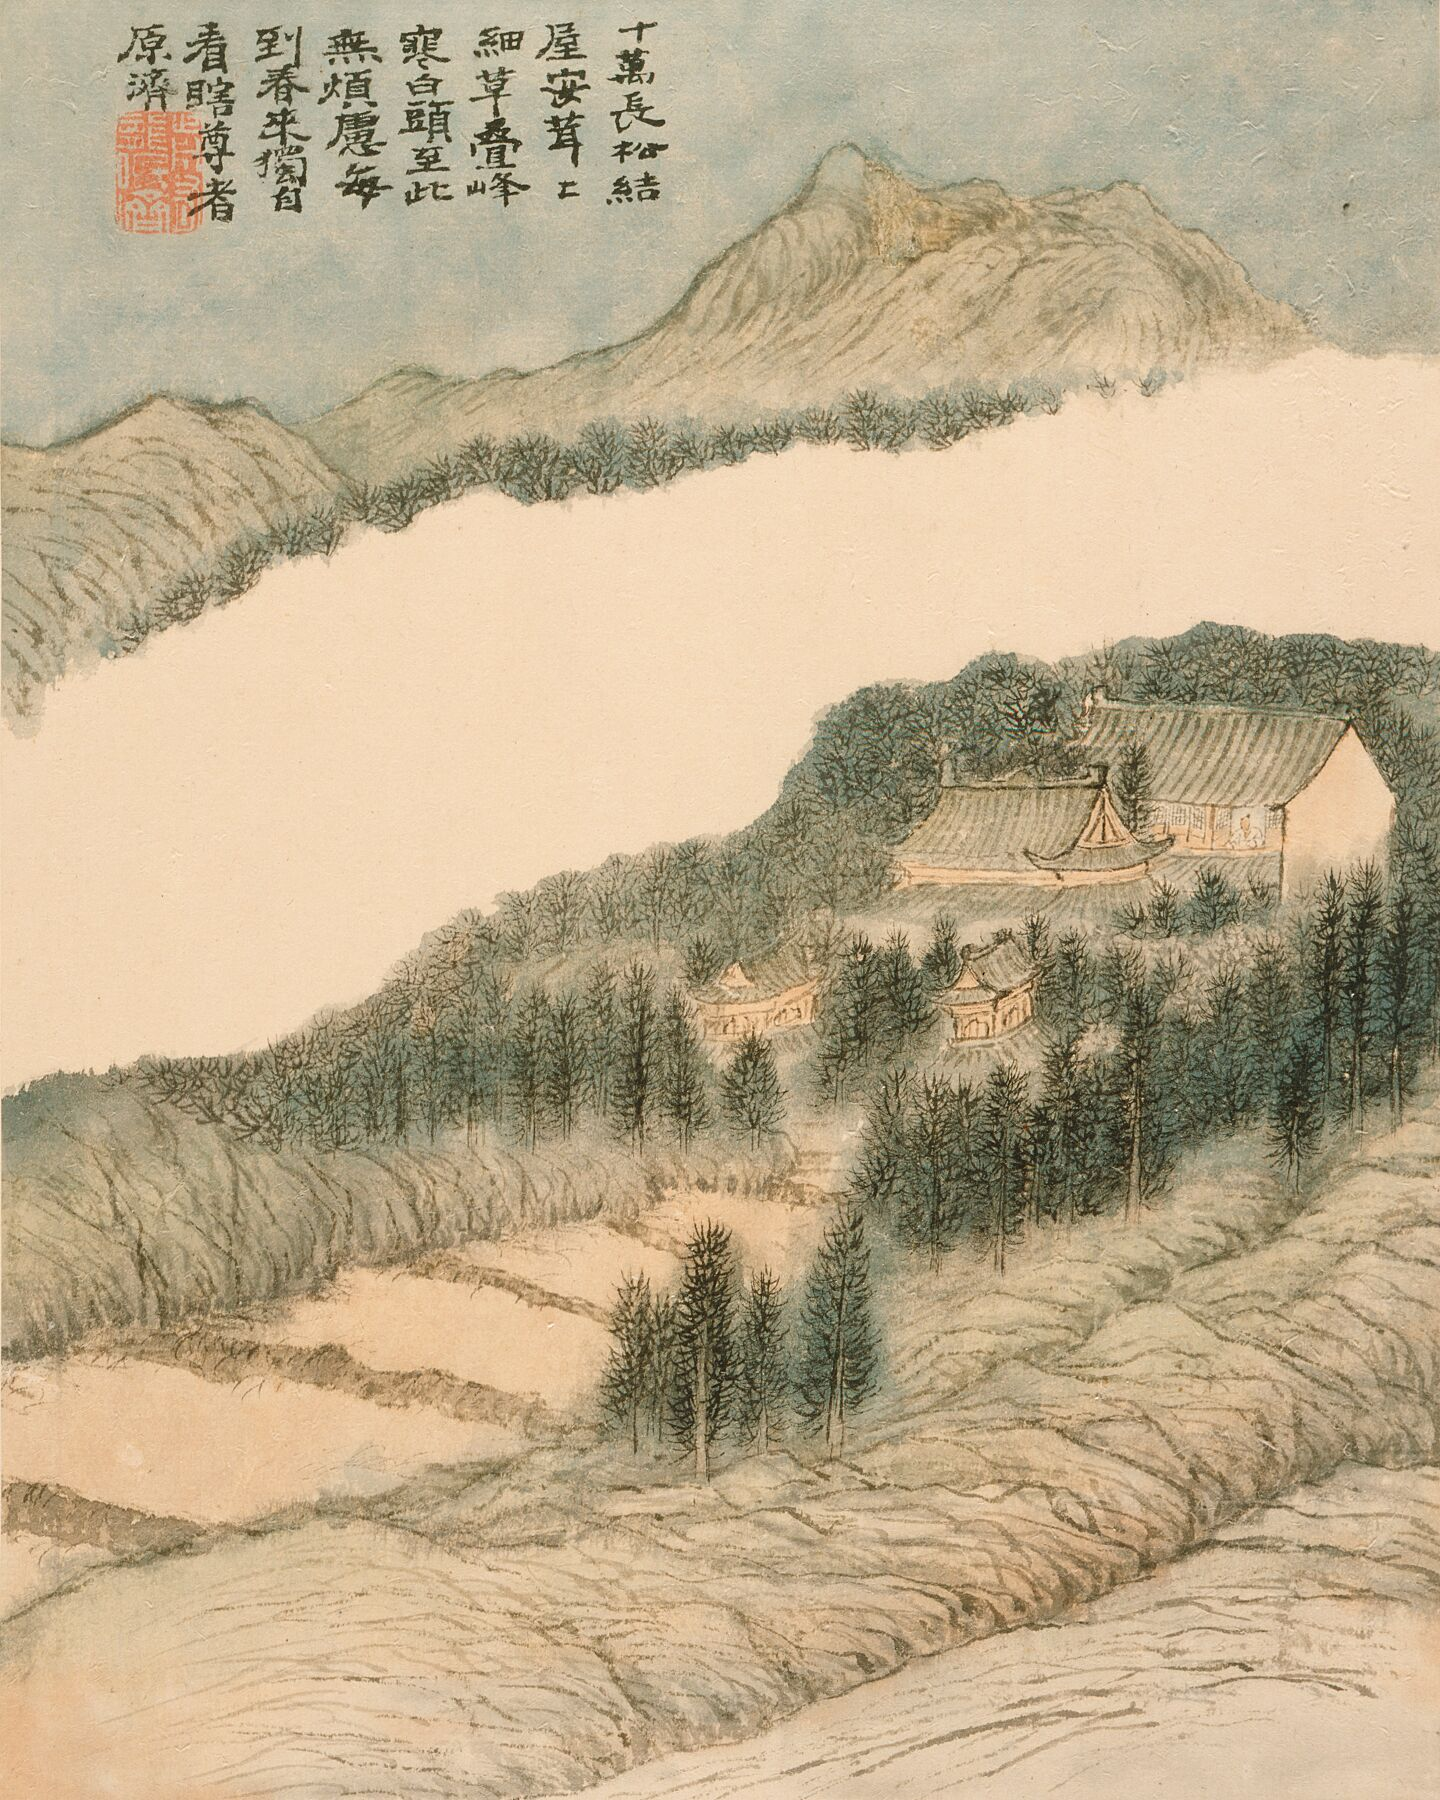 Landscapes by Shitao (China, Guangxi Province, 1642-1707) China, Chinese, Qing dynasty, dated 1694. Eight-leaf album, ink and color on paper.